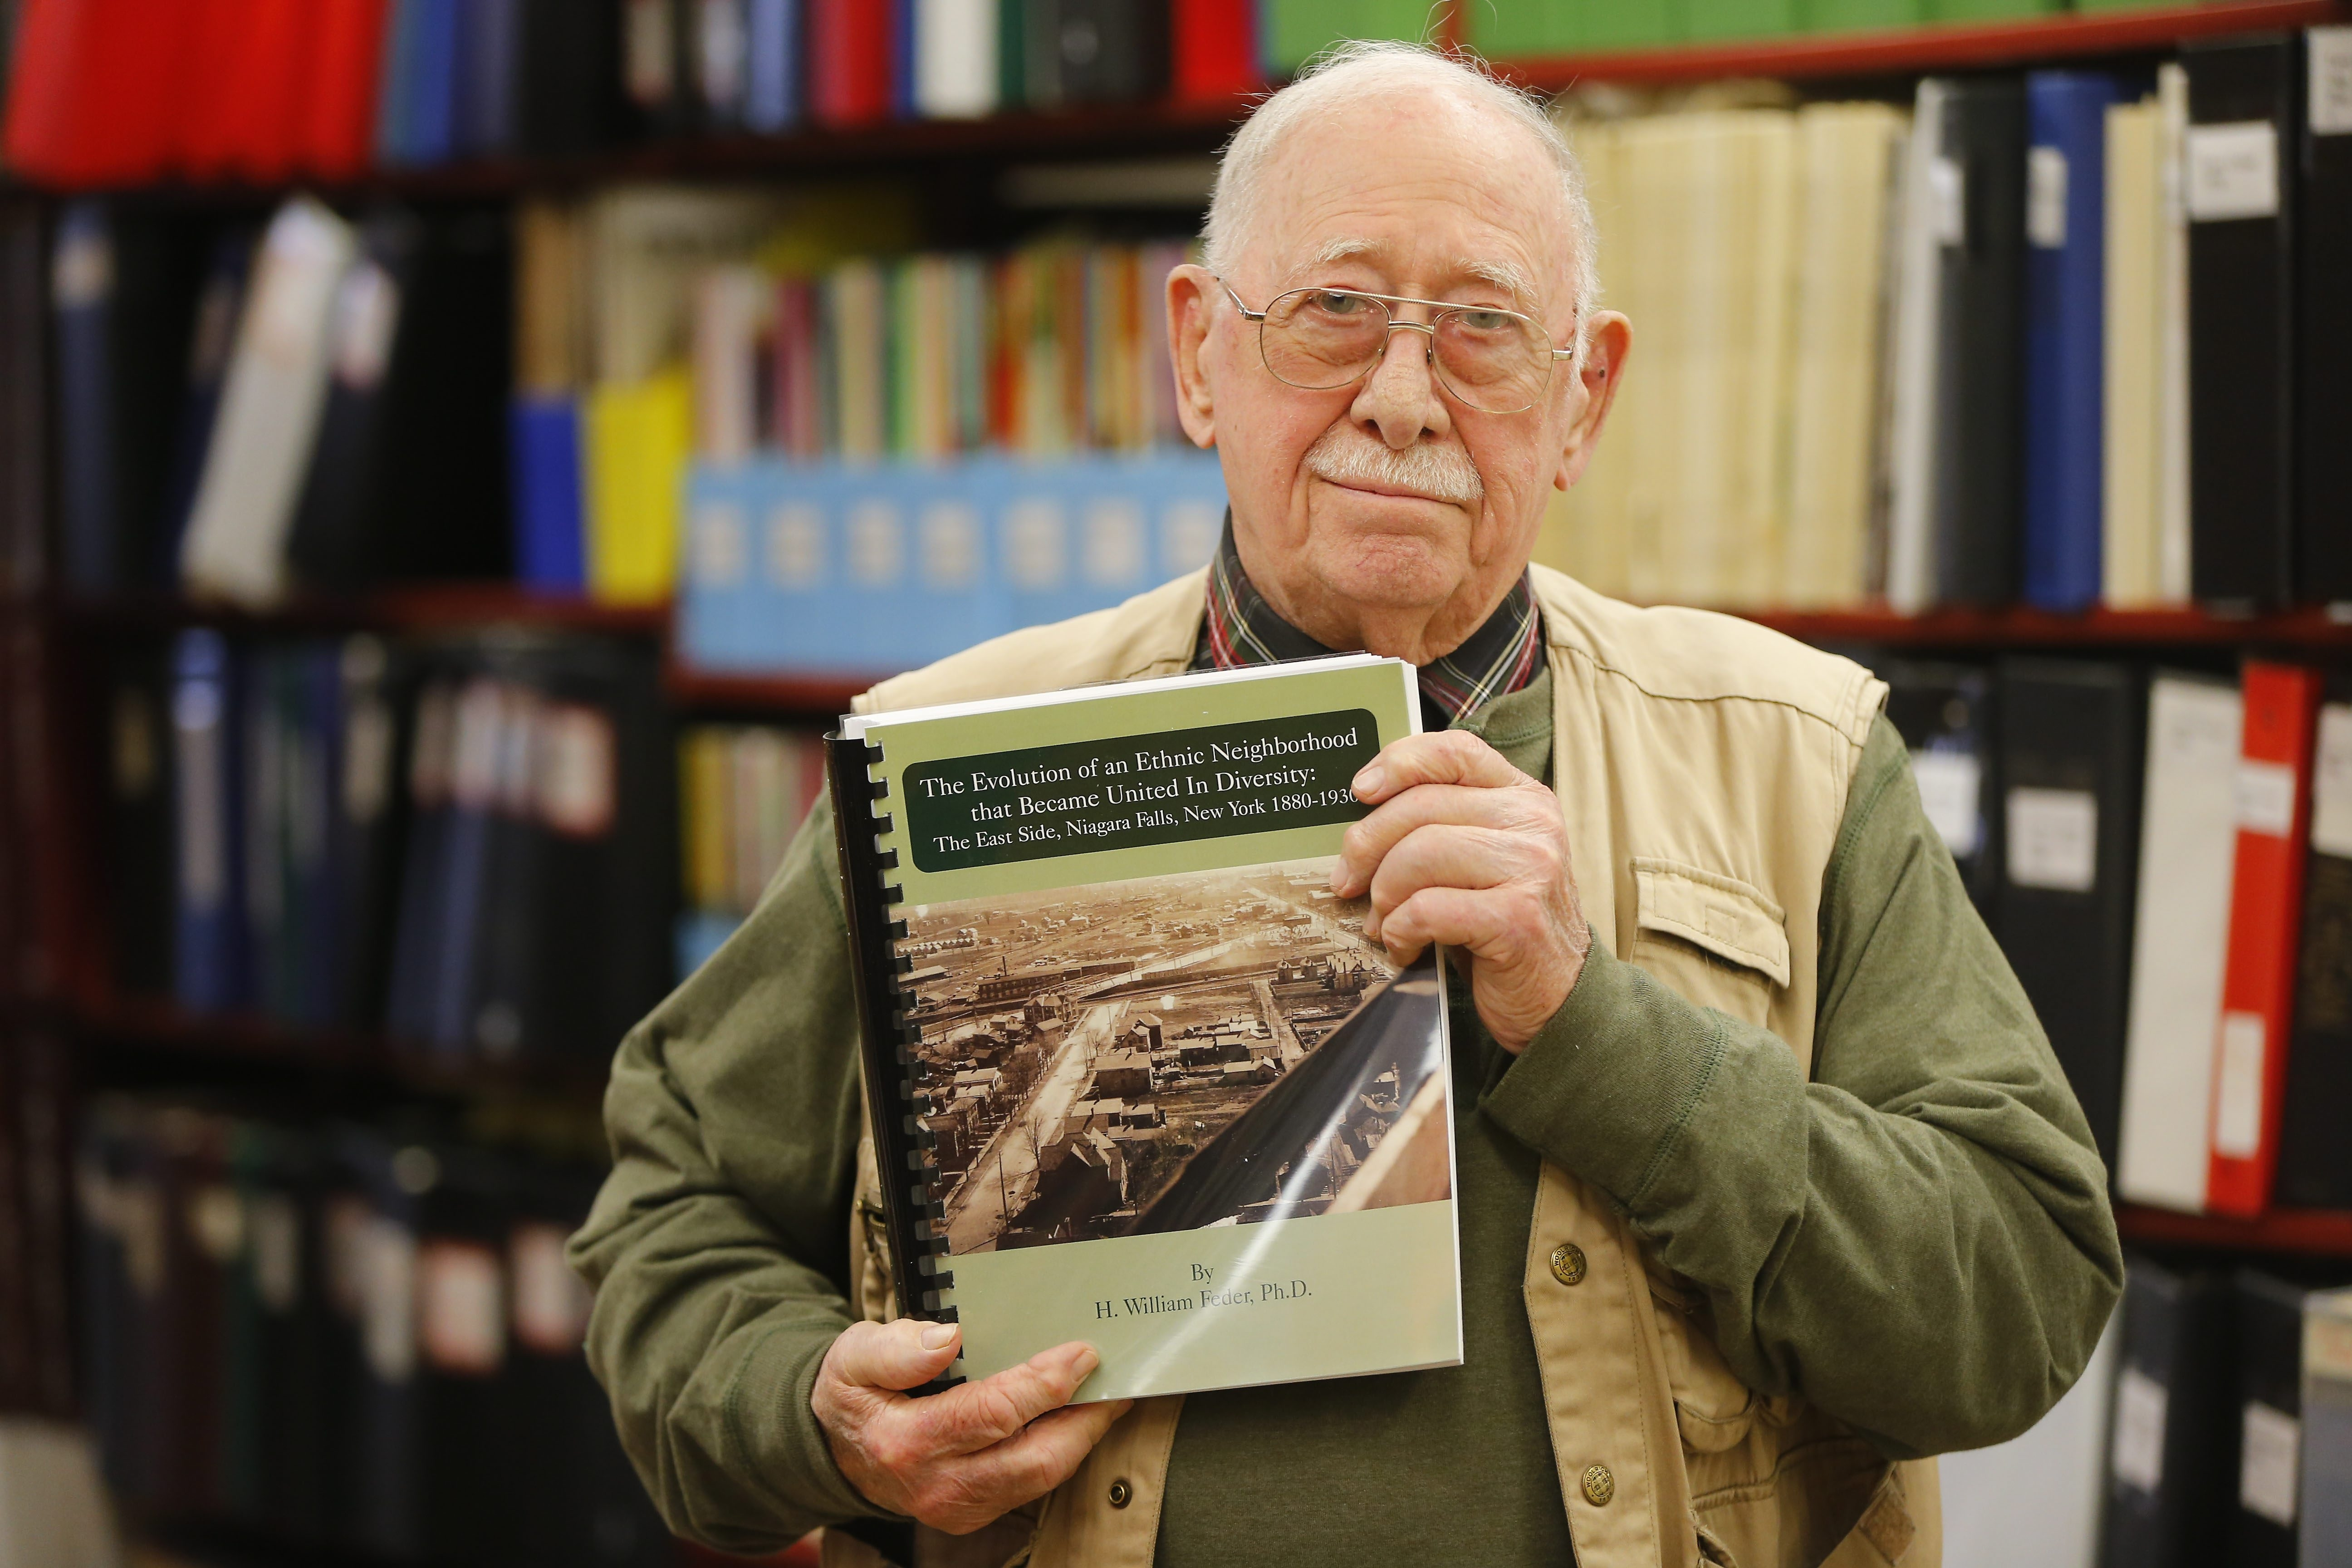 H. William Feder, former historian for Niagara County, holds his book at the Niagara Falls Library.